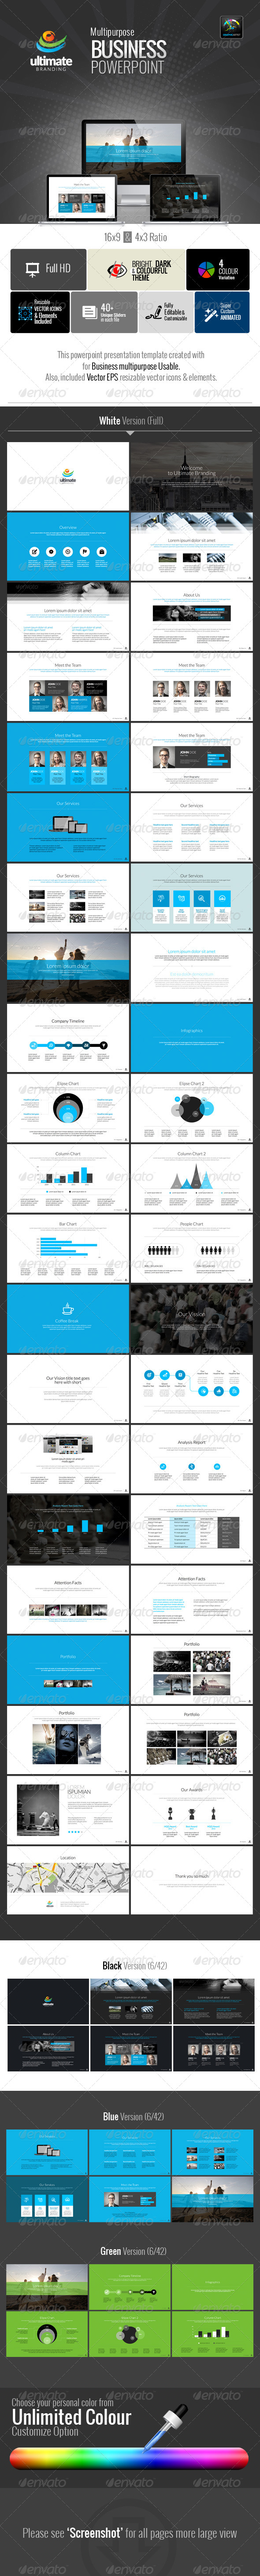 GraphicRiver Ultimate Multipurpose Business PowerPoint 6577310